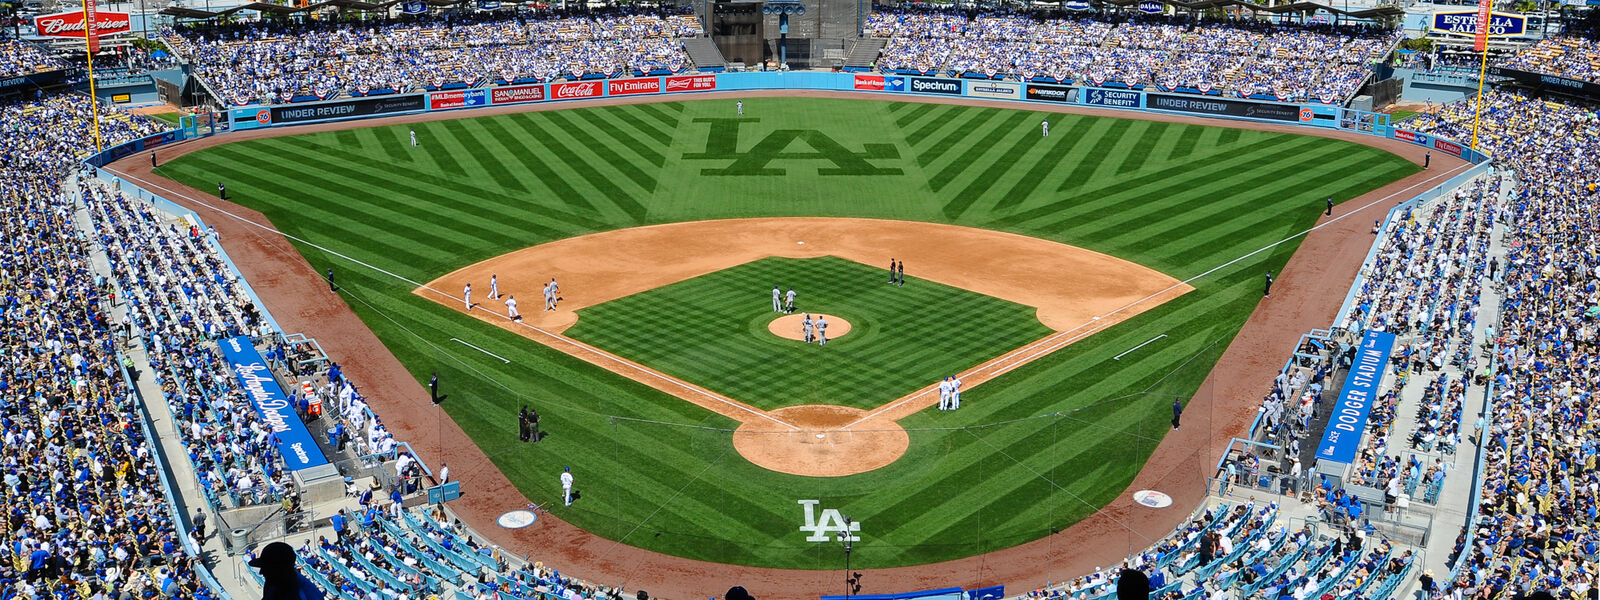 Colorado Rockies at Los Angeles Dodgers Tickets ($1 Dodger Dog Night)